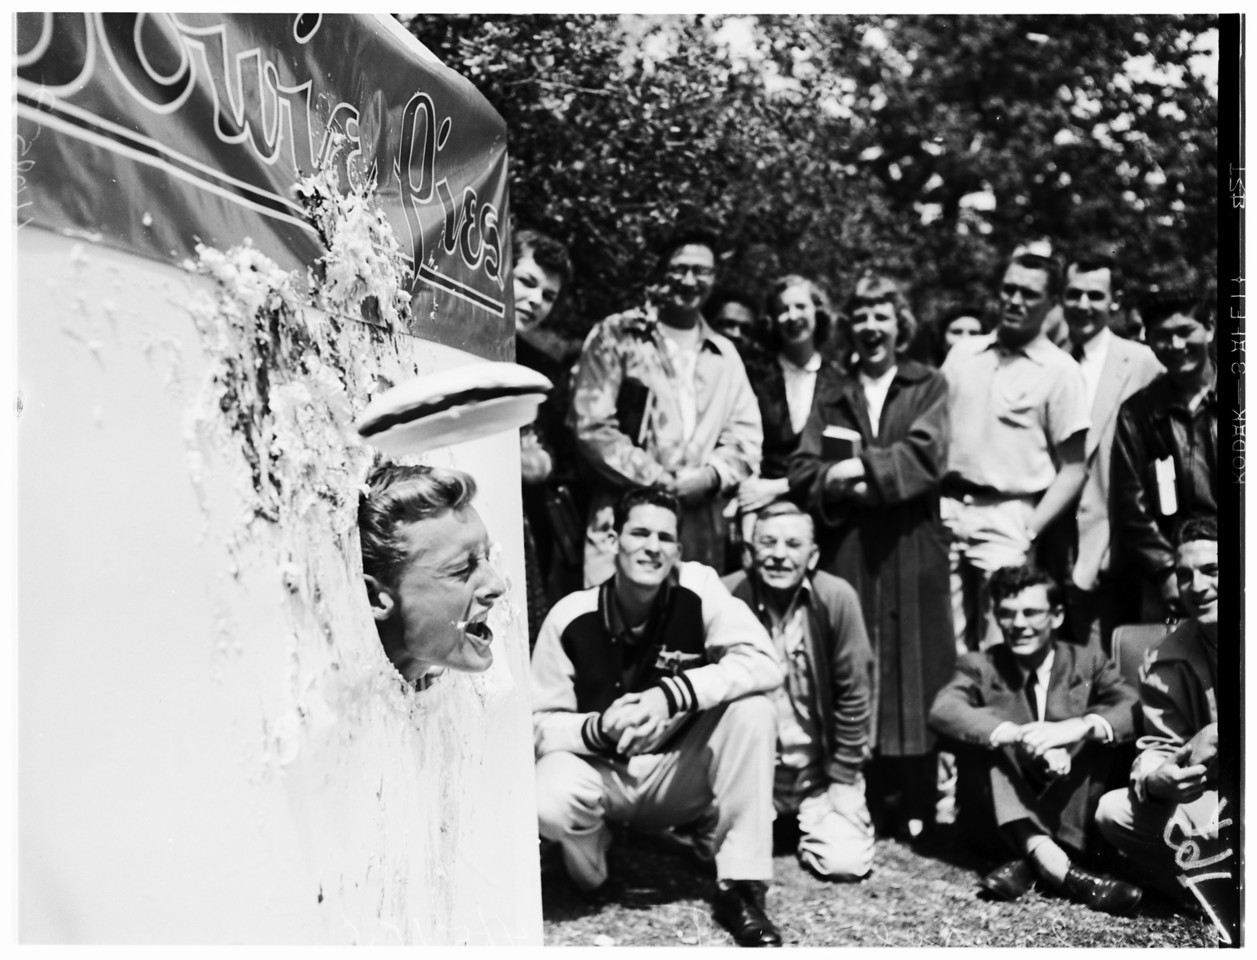 Pie throwing (University of Southern California), 1954